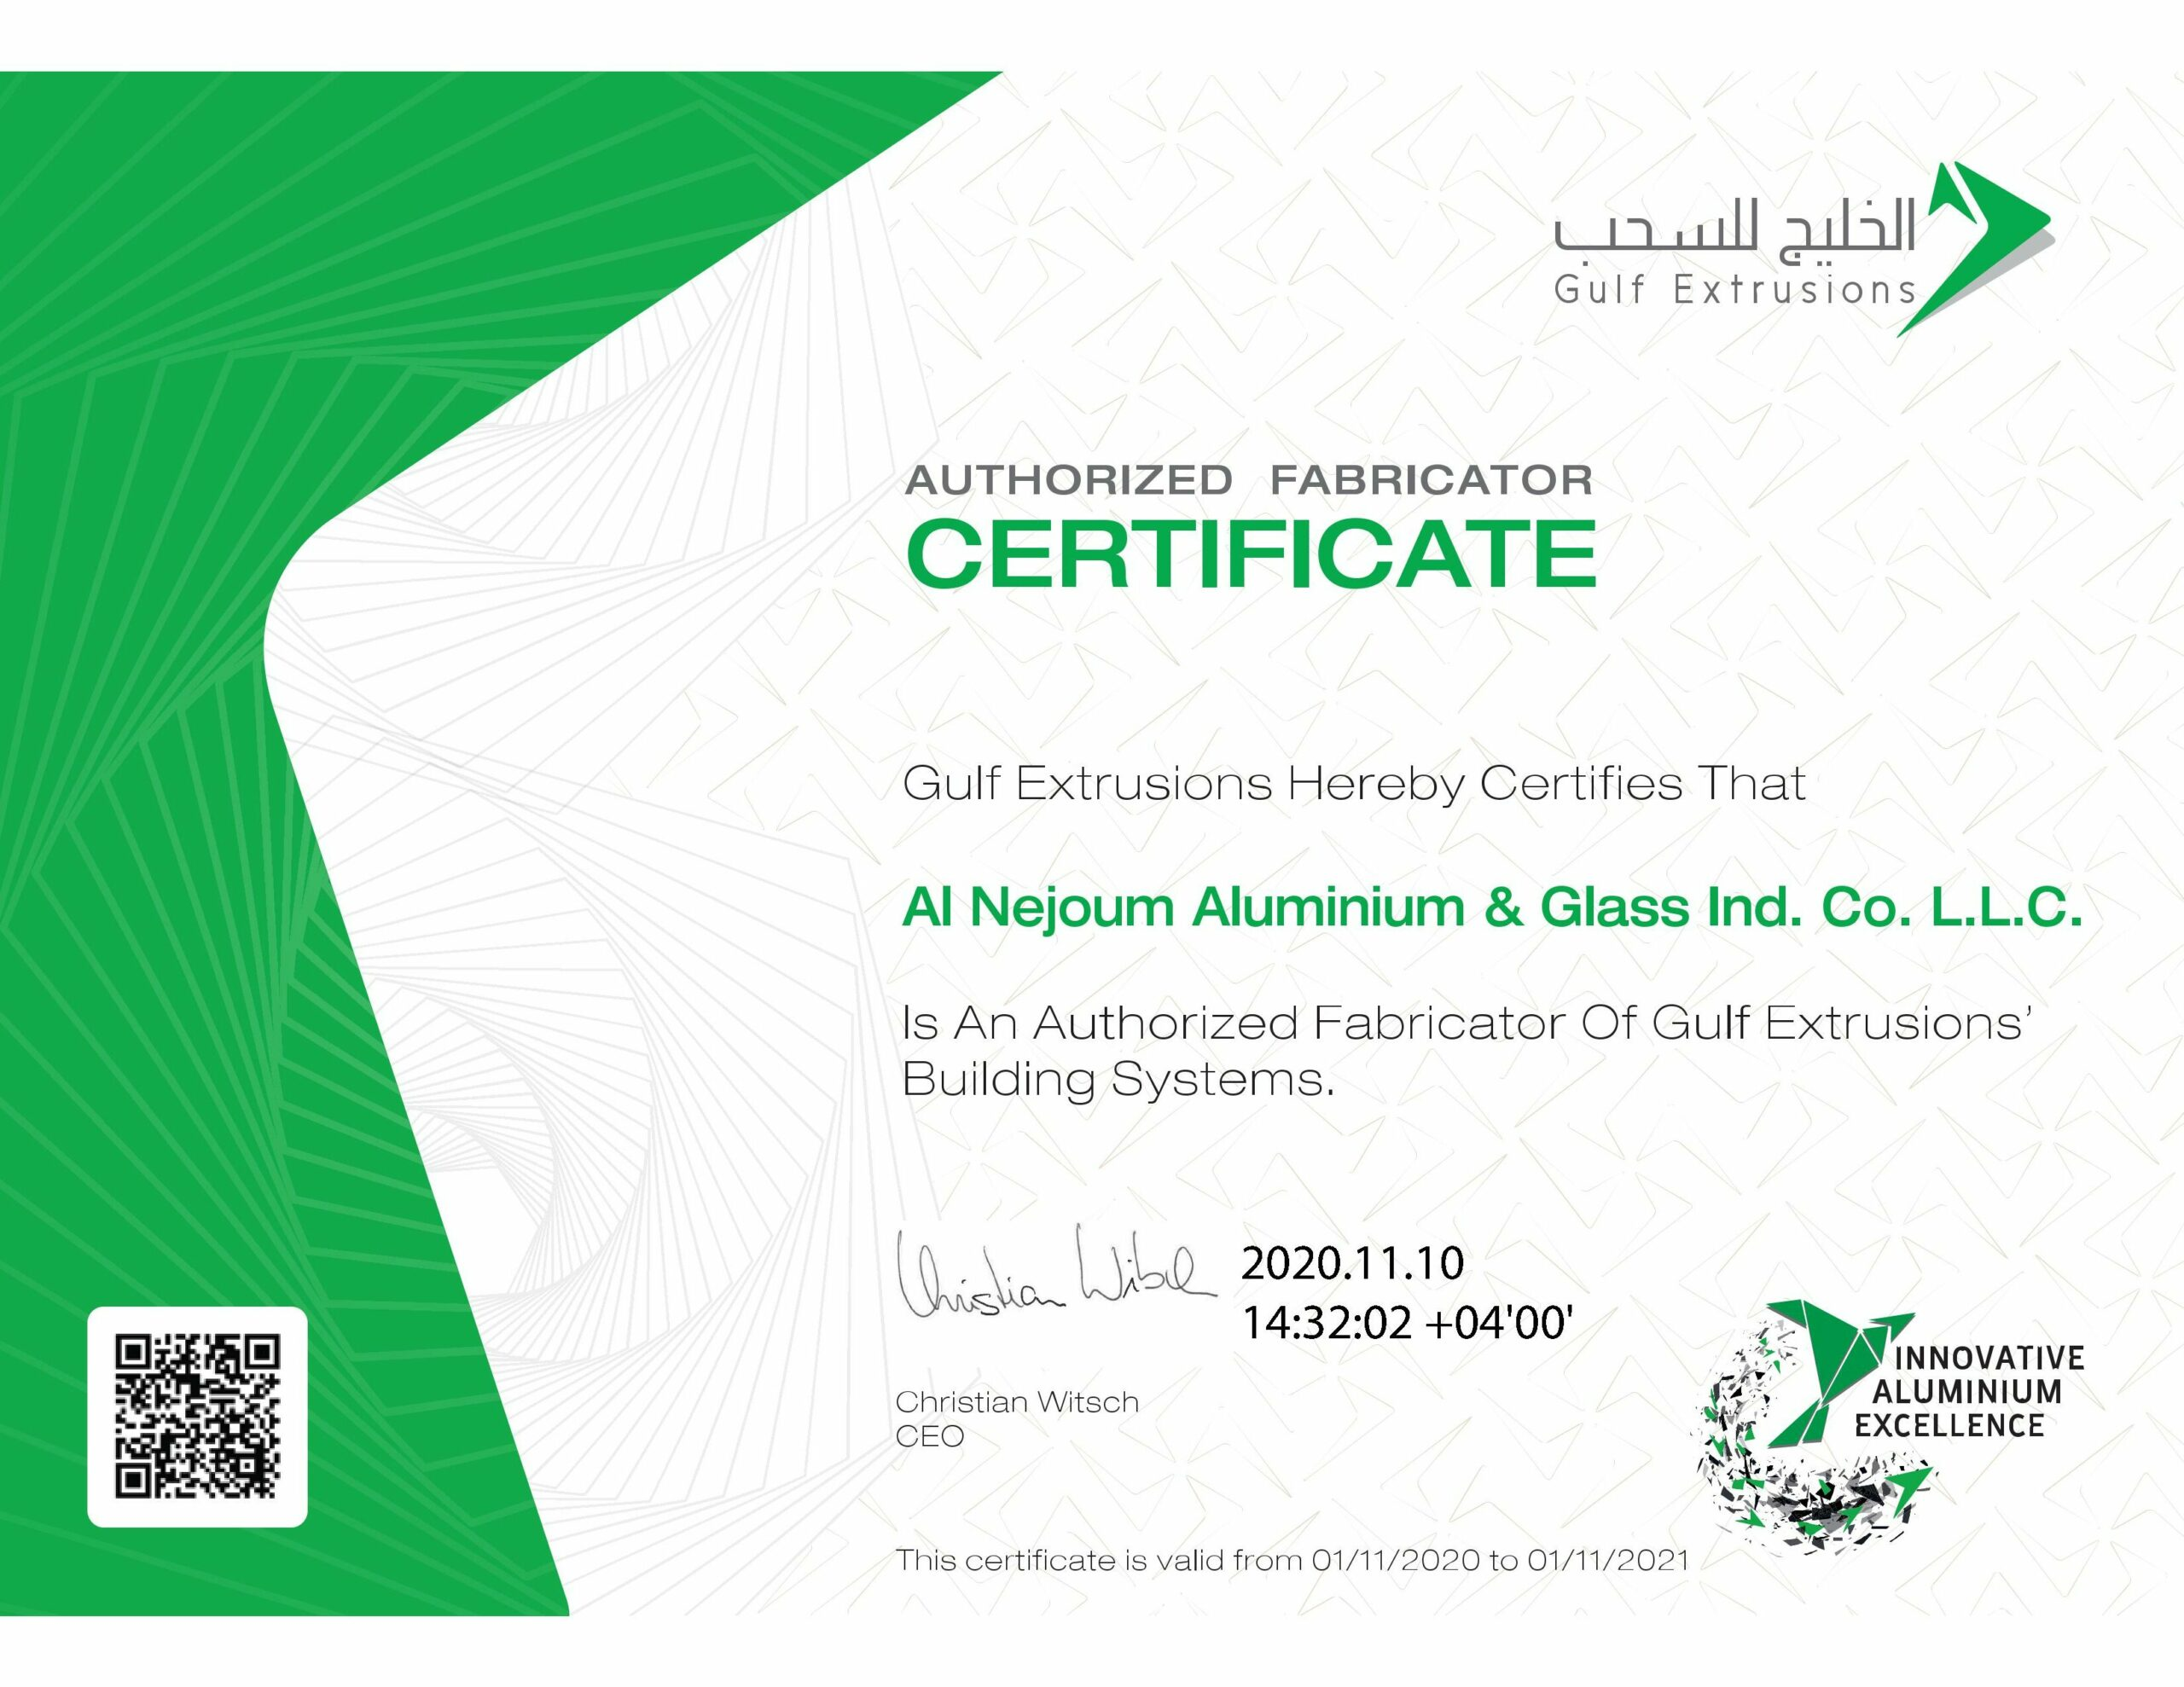 authorized fabricator certificate from gulf extrusion